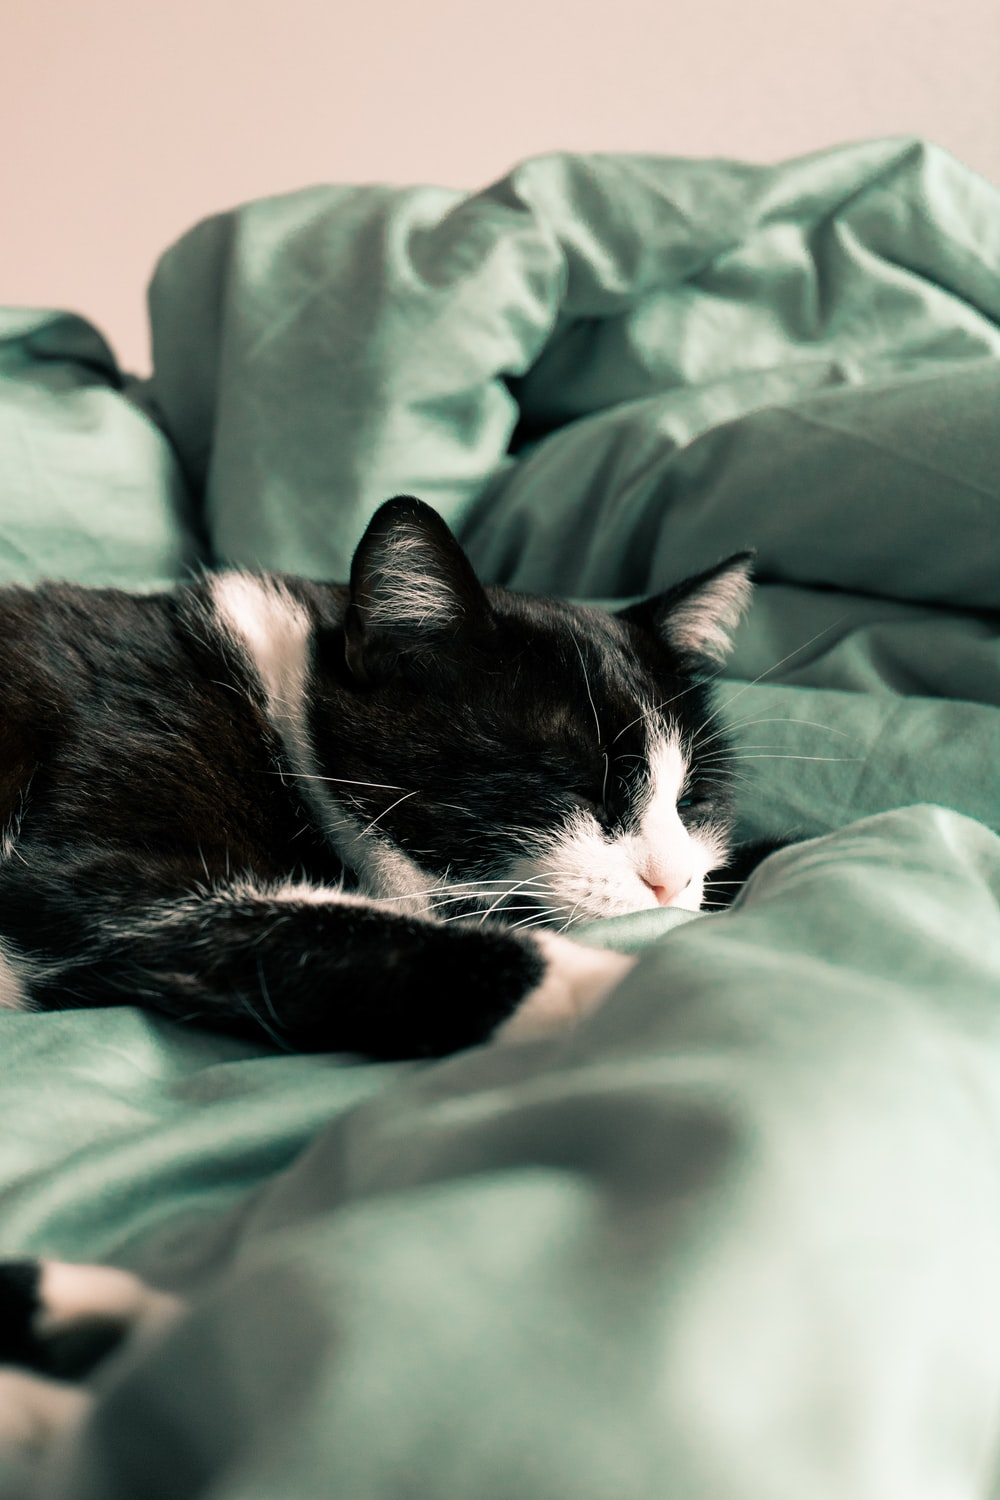 black and white cat sleeping on green textile